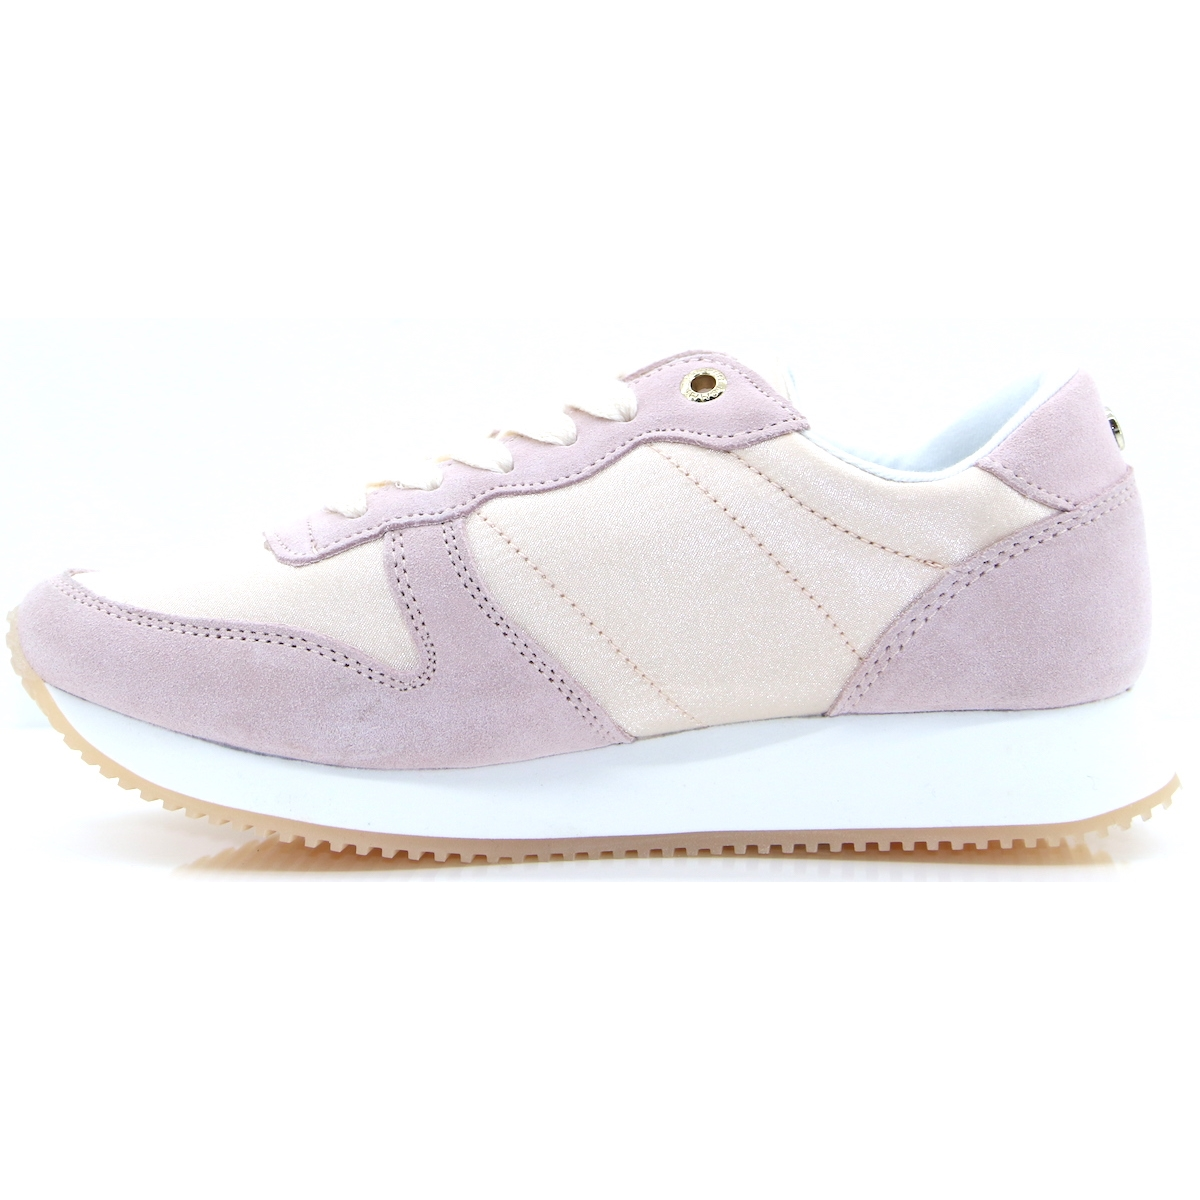 d6770587473e Sparkle Satin City Sneaker - Tommy Hilfiger LIGHT PINK TRAINERS - Panache  Shoe Company